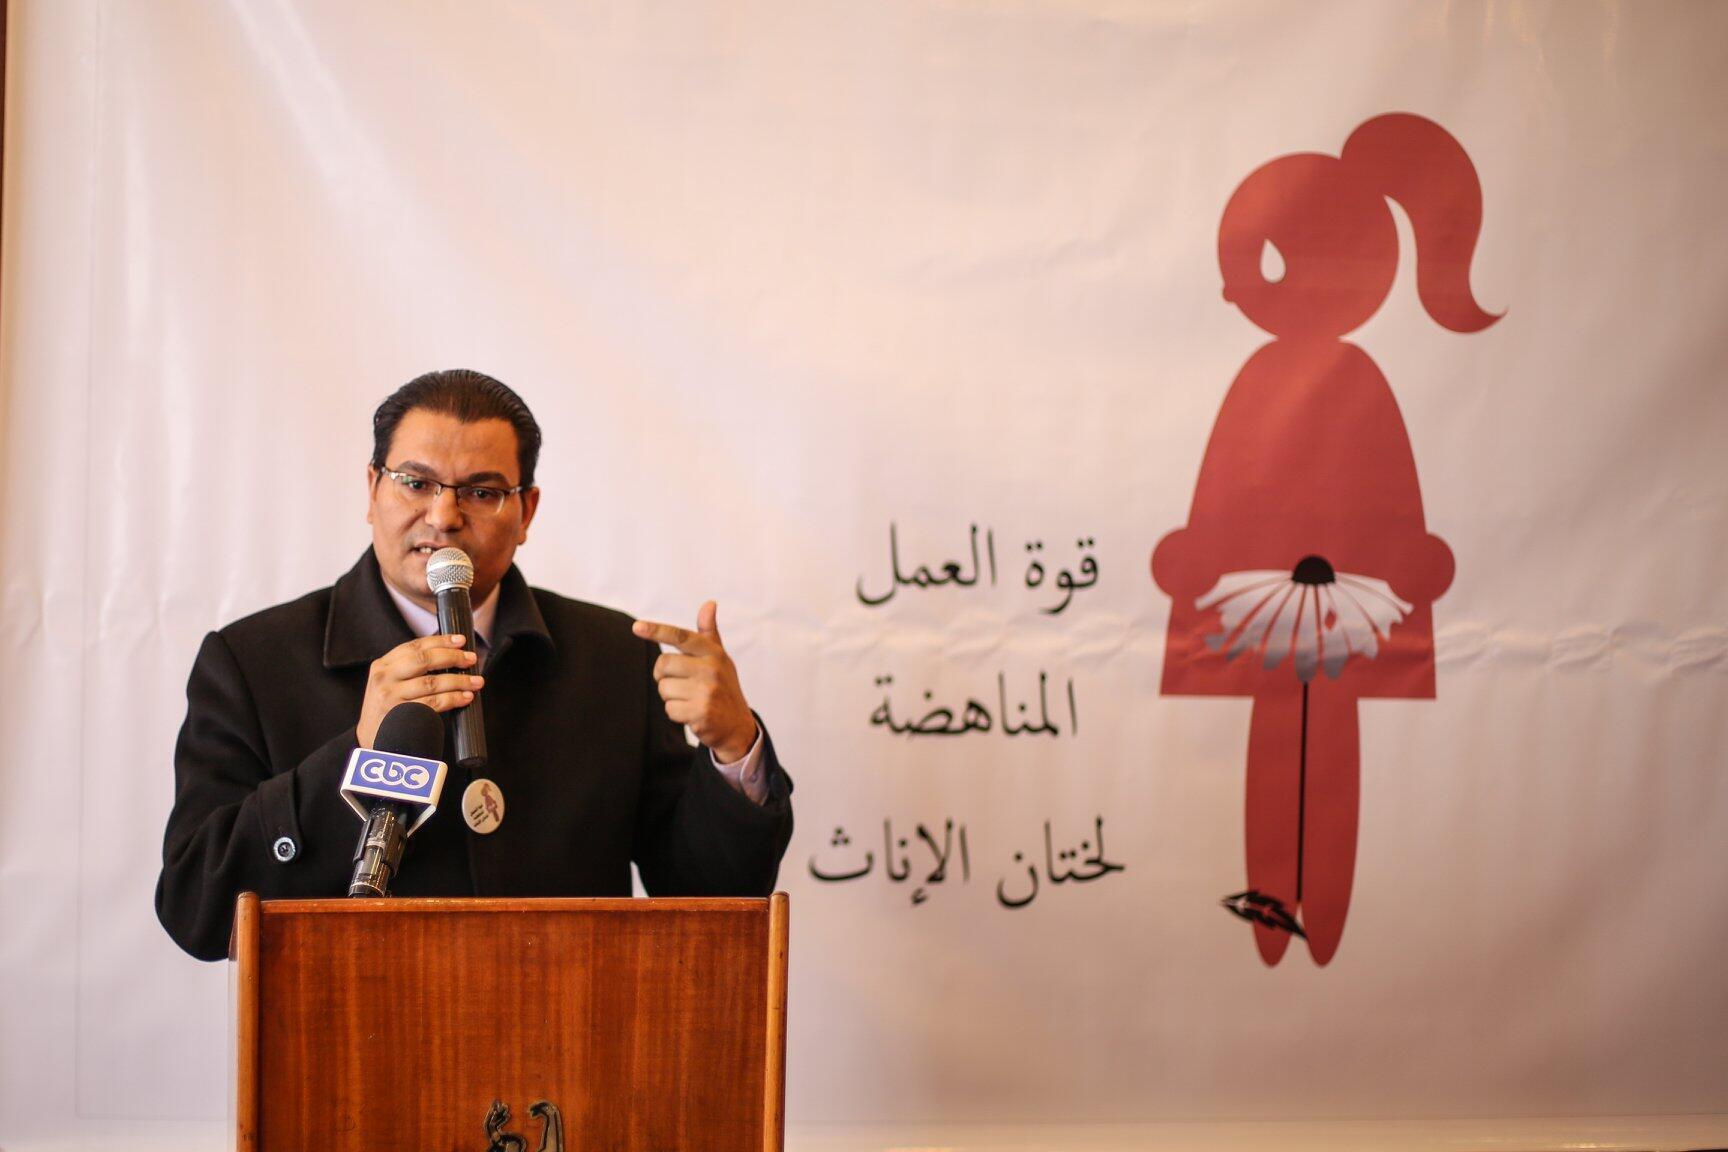 Human rights lawyer Reda Eldanbouki works through his own support centre and other NGOs to stop FGM in Egypt.